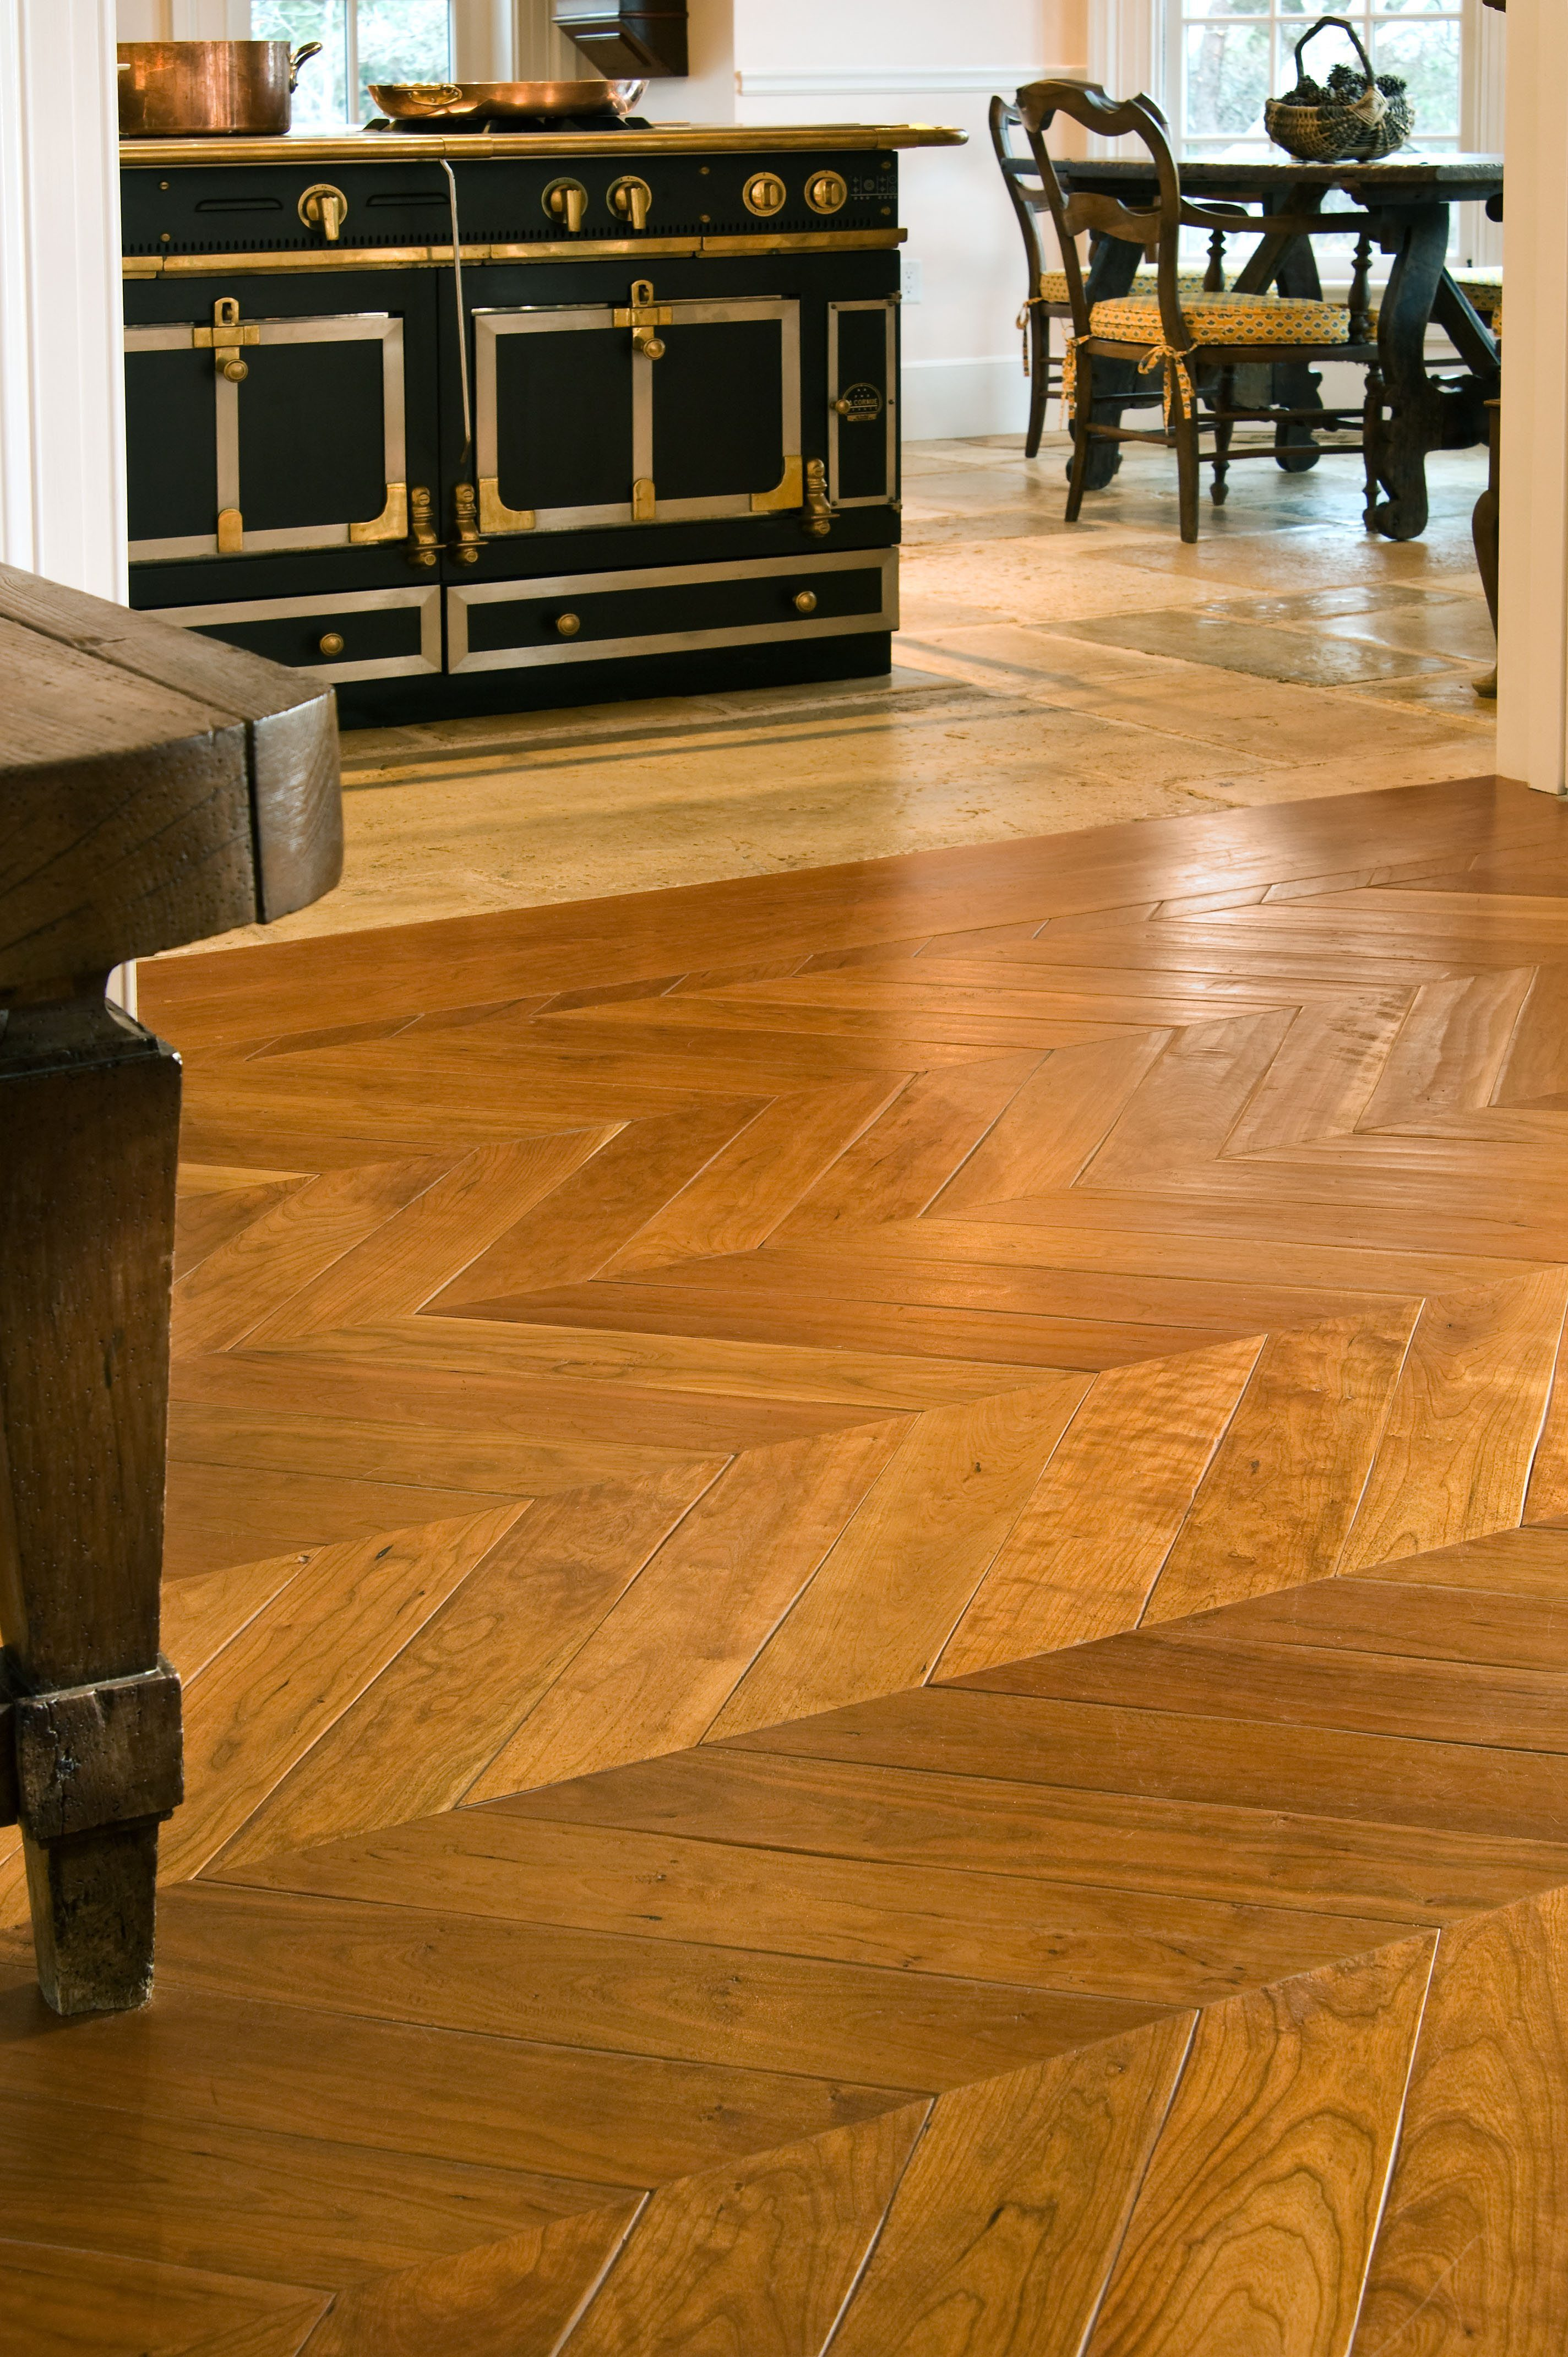 Cherry Chevron Solid Wood Floors In A Heritage Kitchen